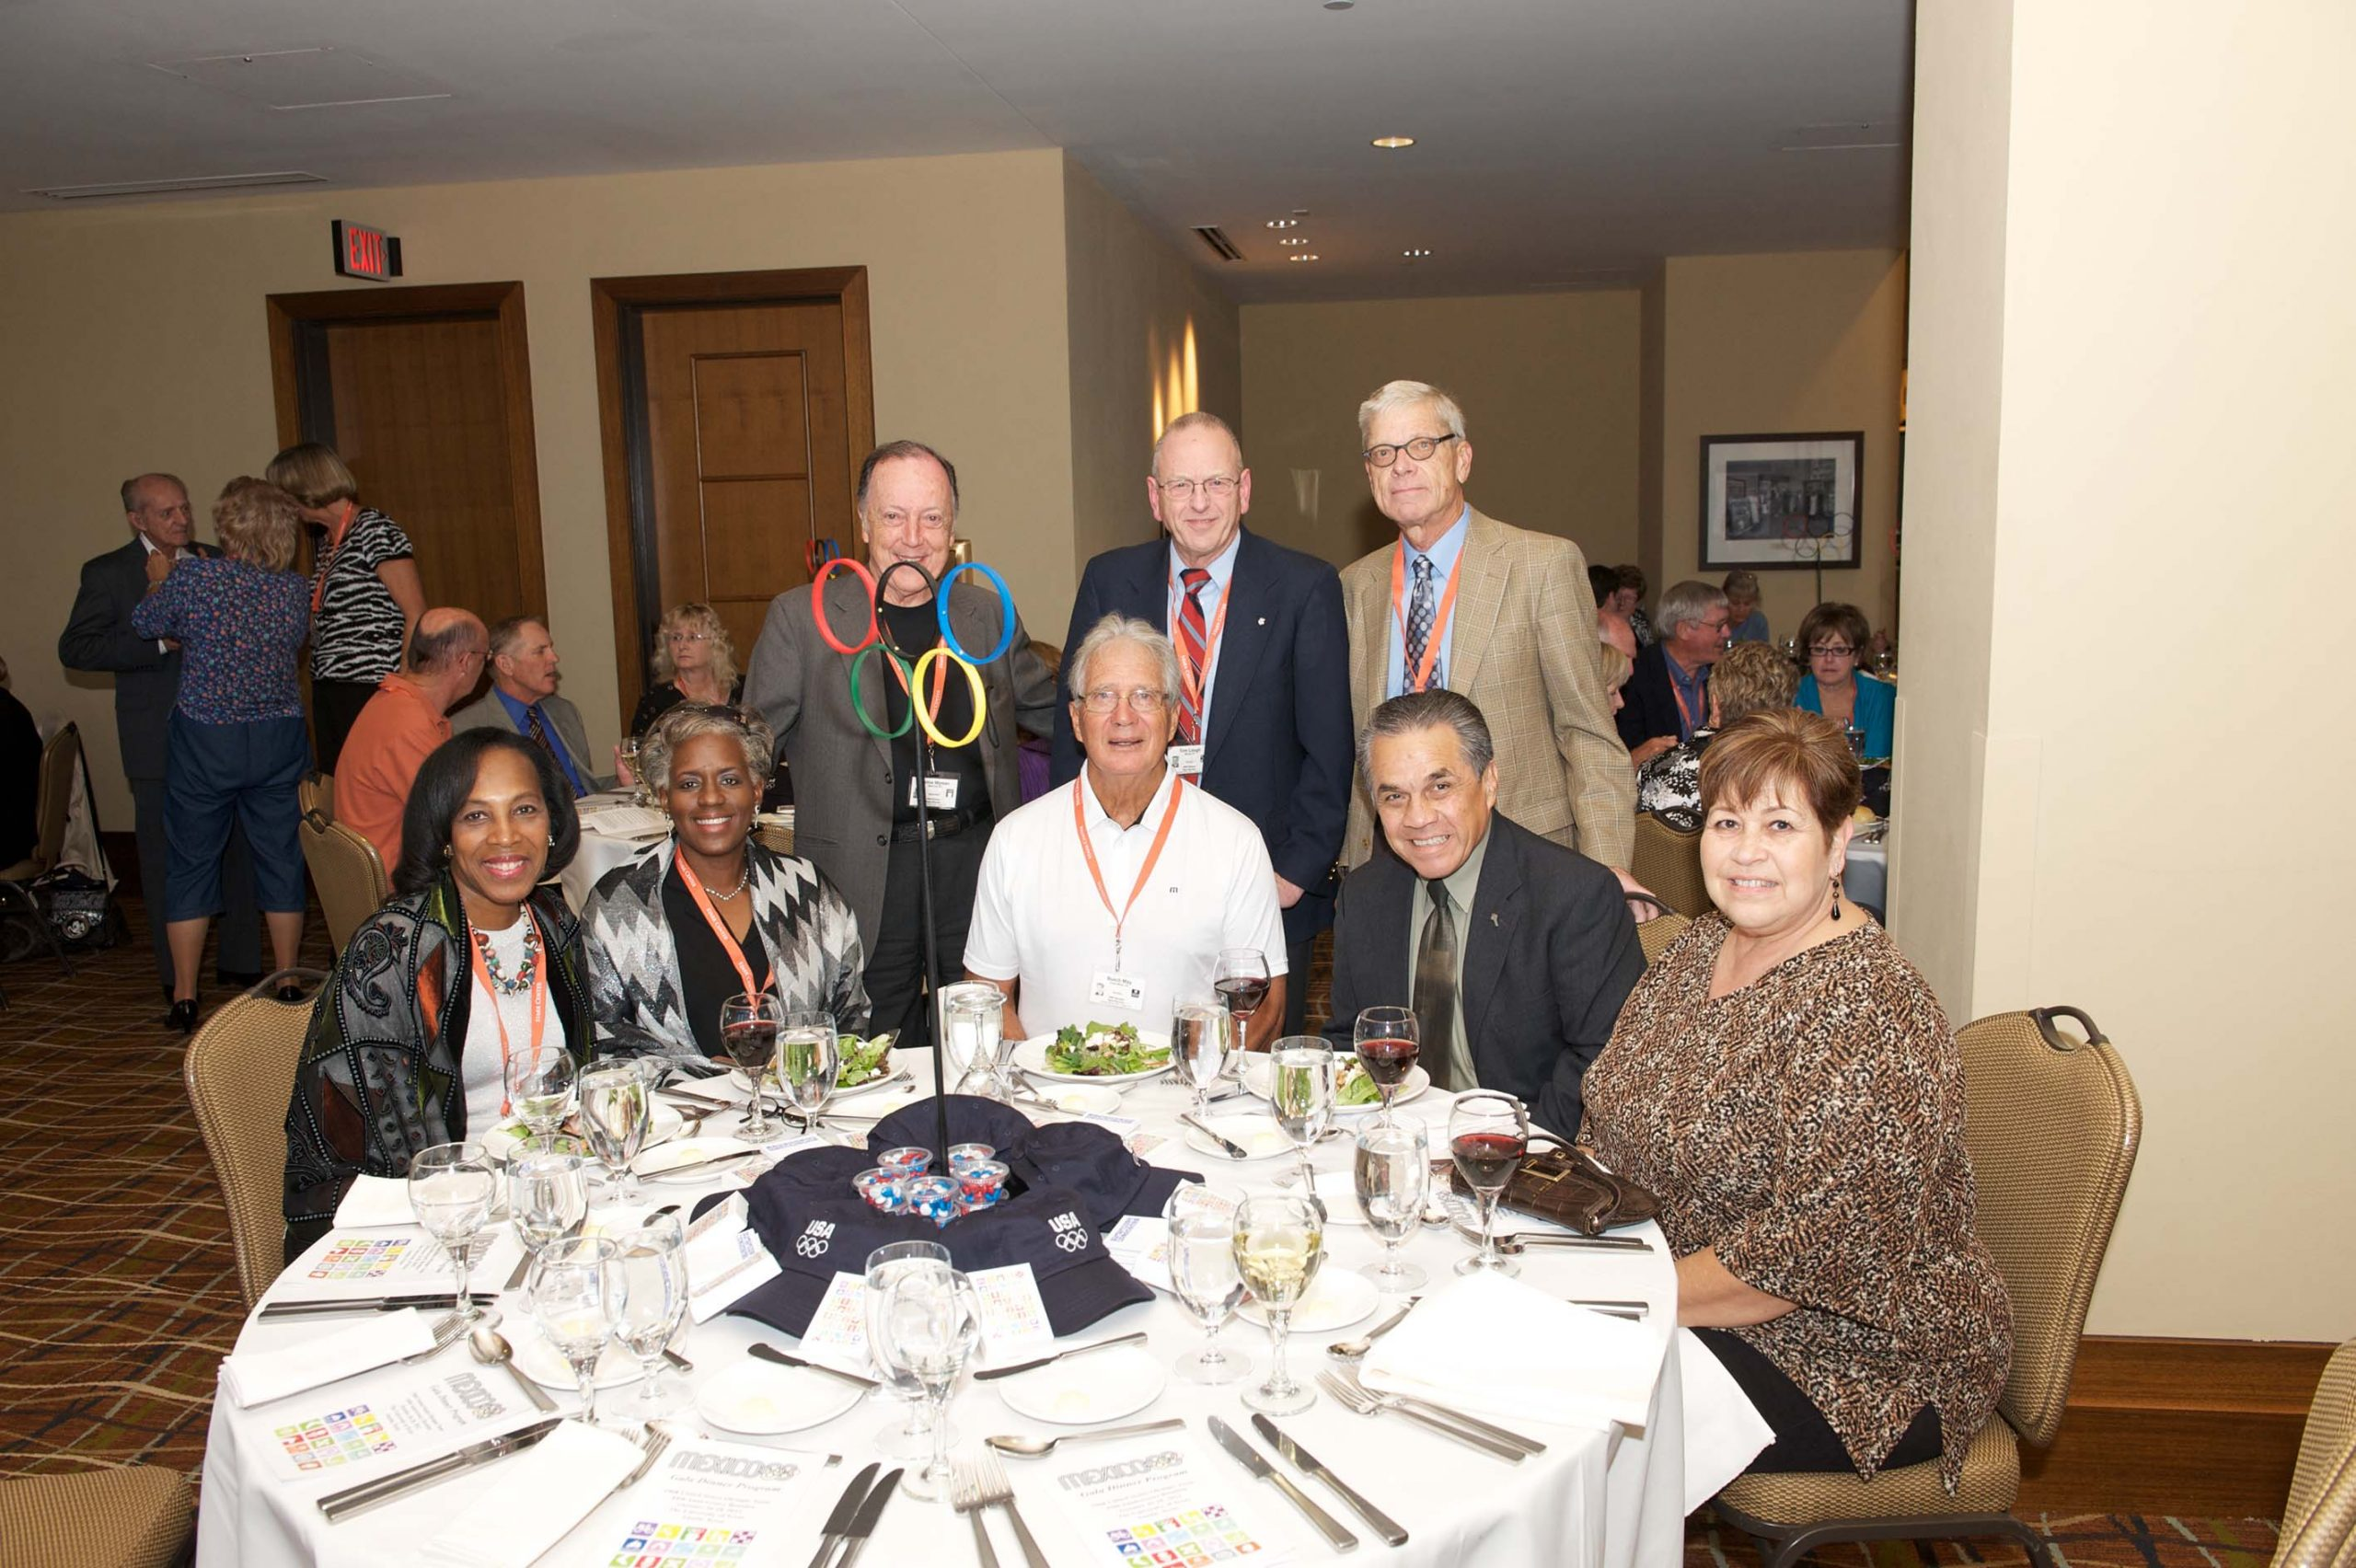 Fourteen people at three tables at the 1968 U.S. Olympic Team 2012 Reunion.